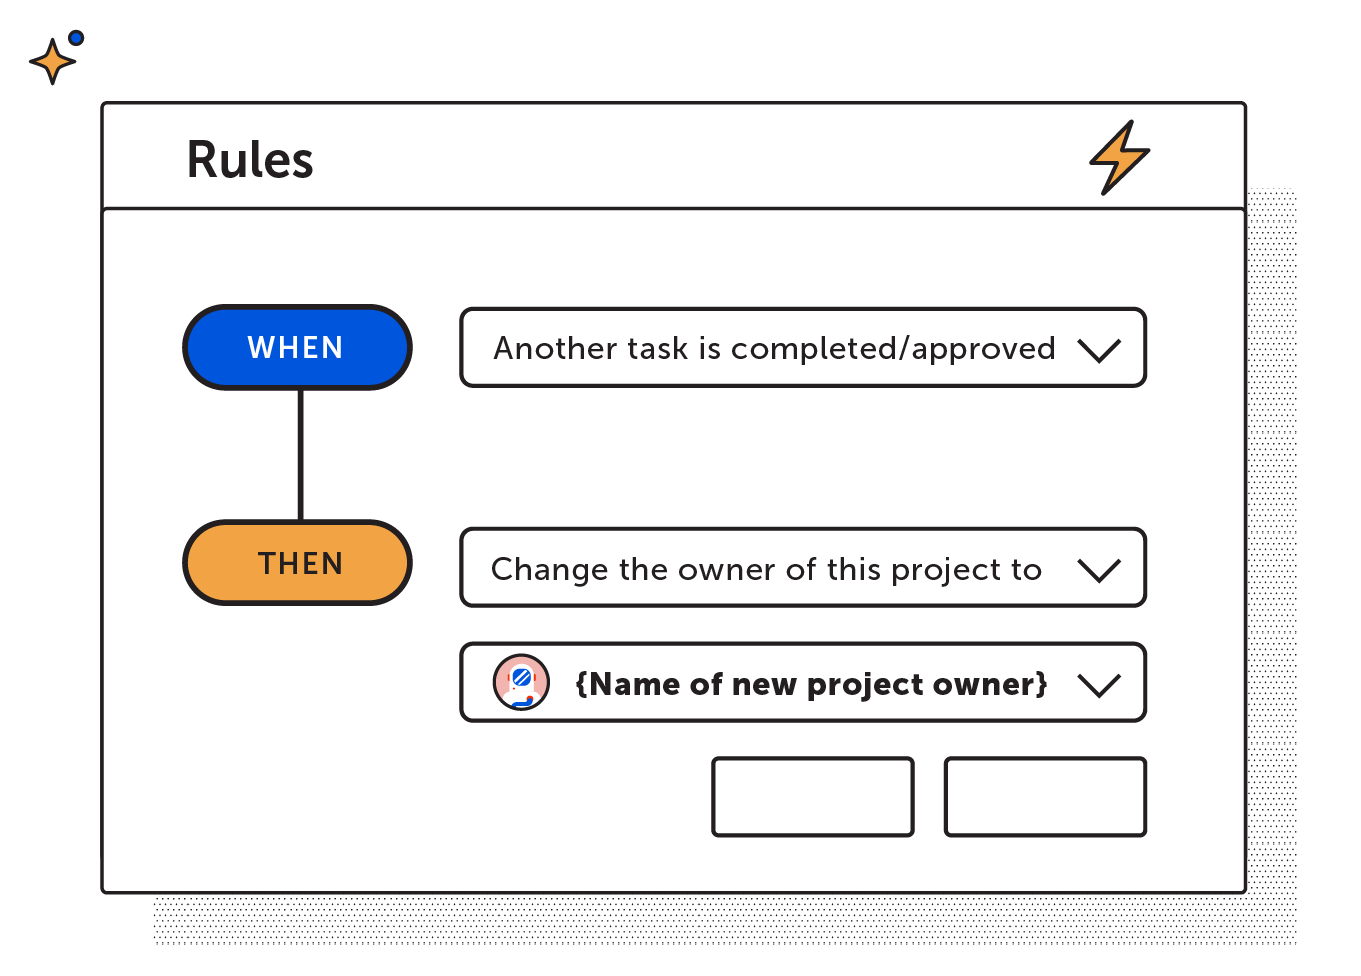 Project owner task rule